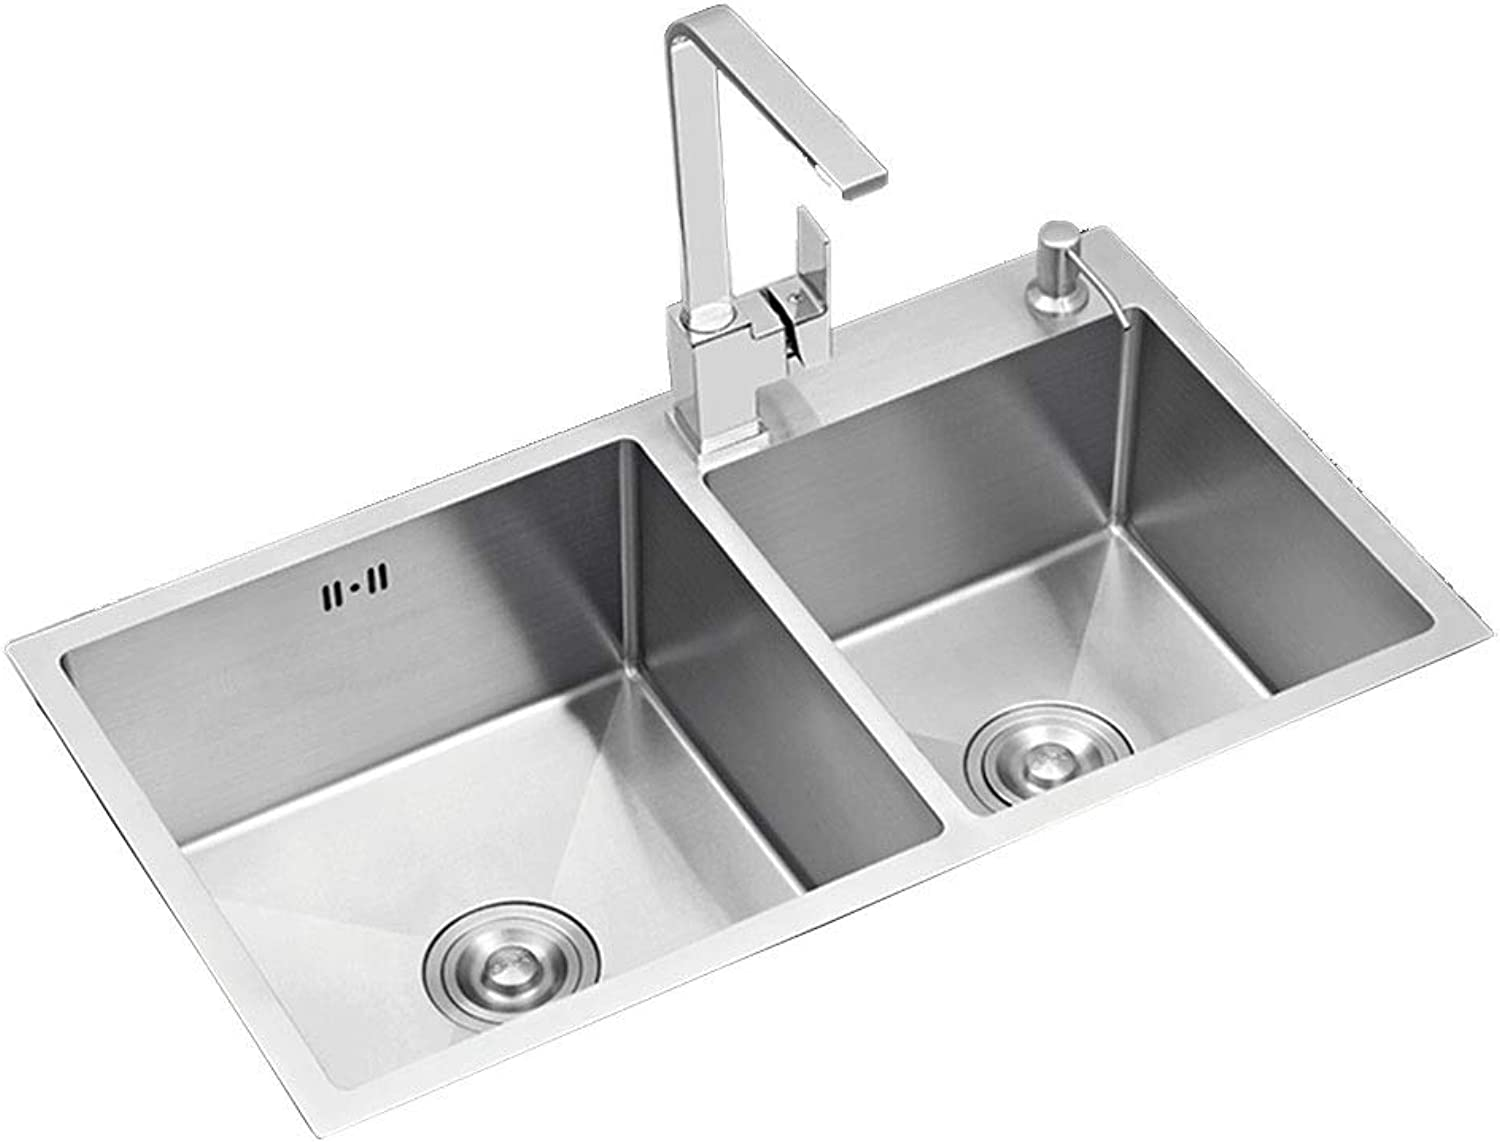 Wash Stands & Vanity Units Sink Stainless Steel Sink Manual Sink Double Sink Kitchen Sink Square Sink Dish Basin 4MM Thick Stainless Steel Sink Wash Basin (color   Silver, Size   72  40  22 cm)